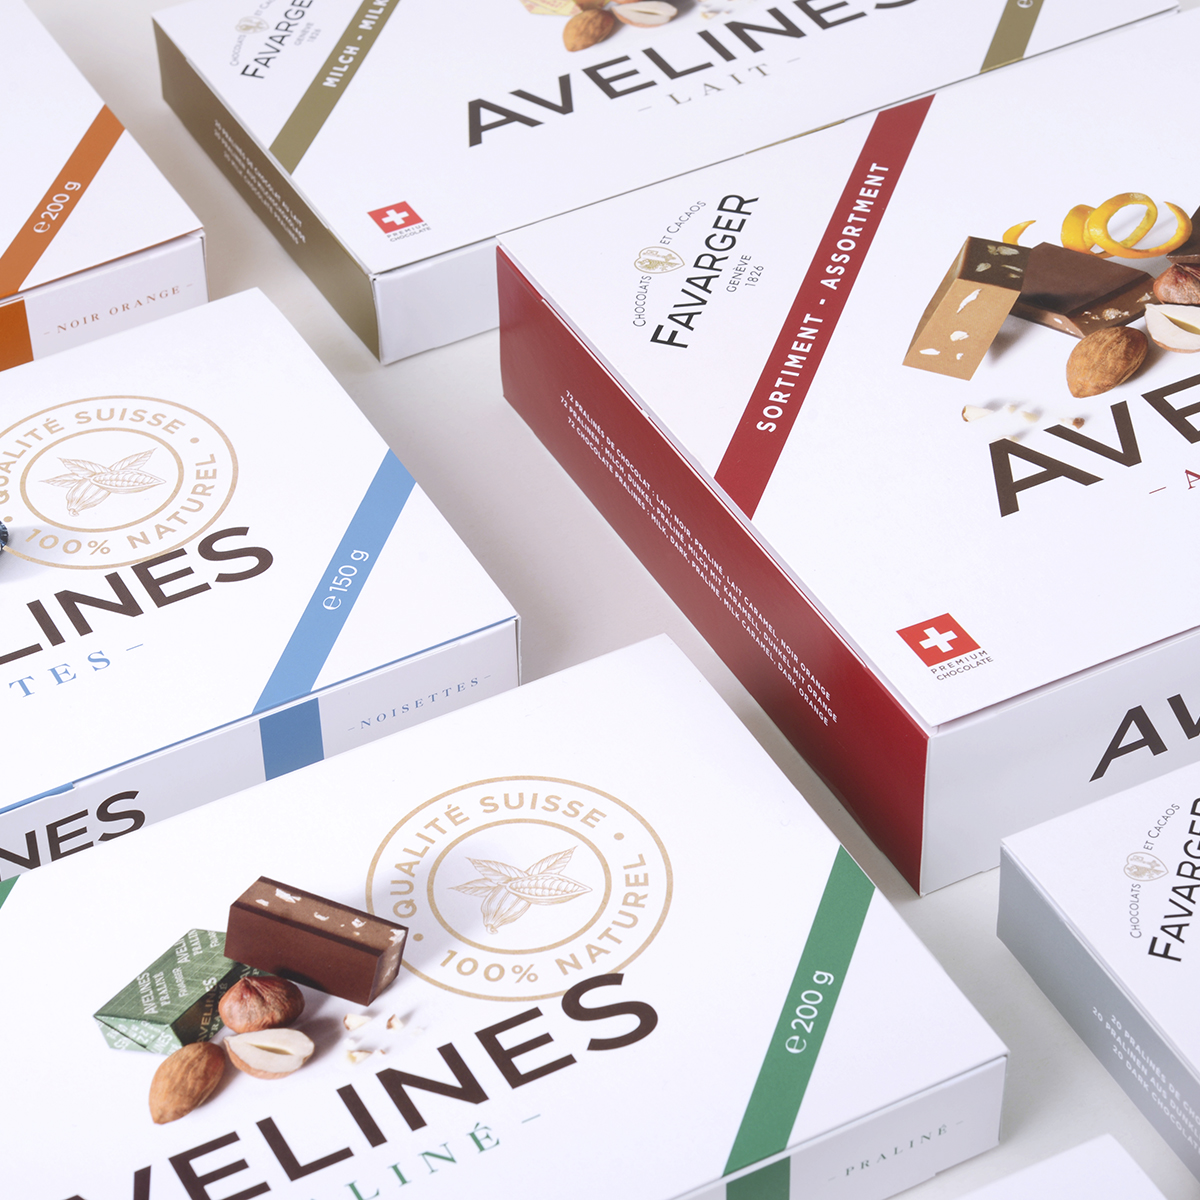 FAVARGER  |  Refonte Gamme Avelines